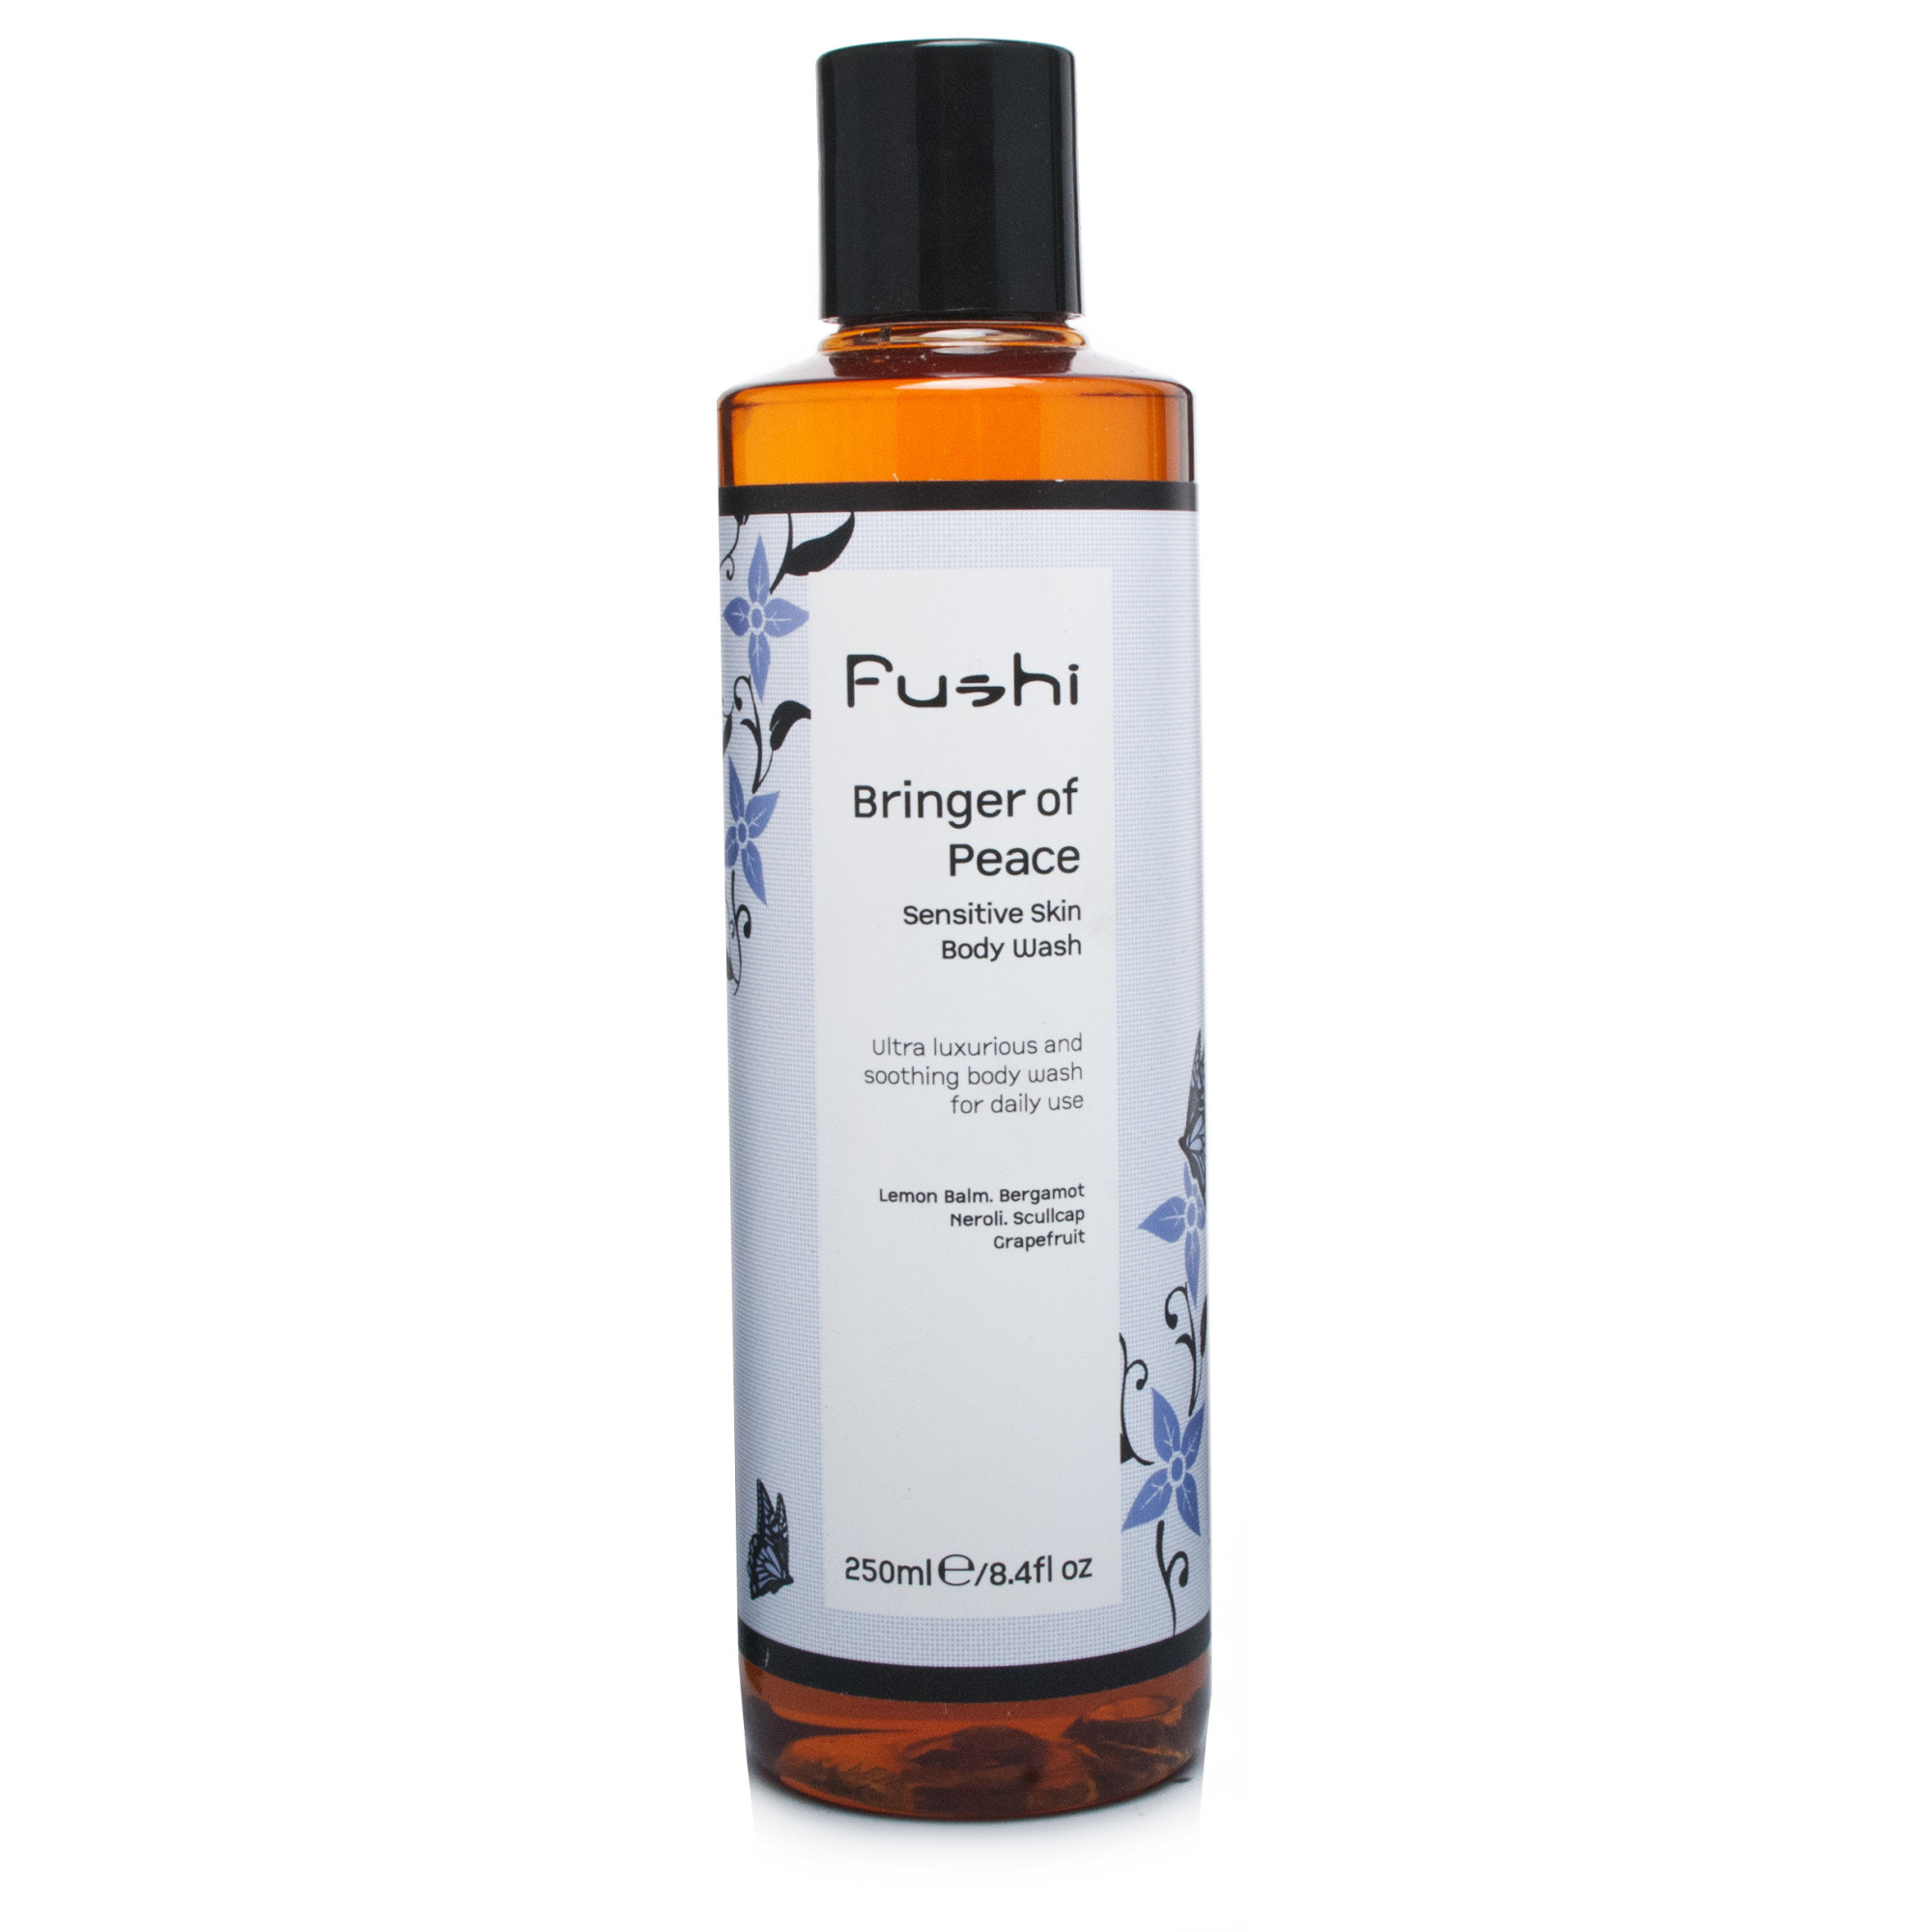 Fushi Bringer of Peace Herbal Body Wash for Sensitive Skin